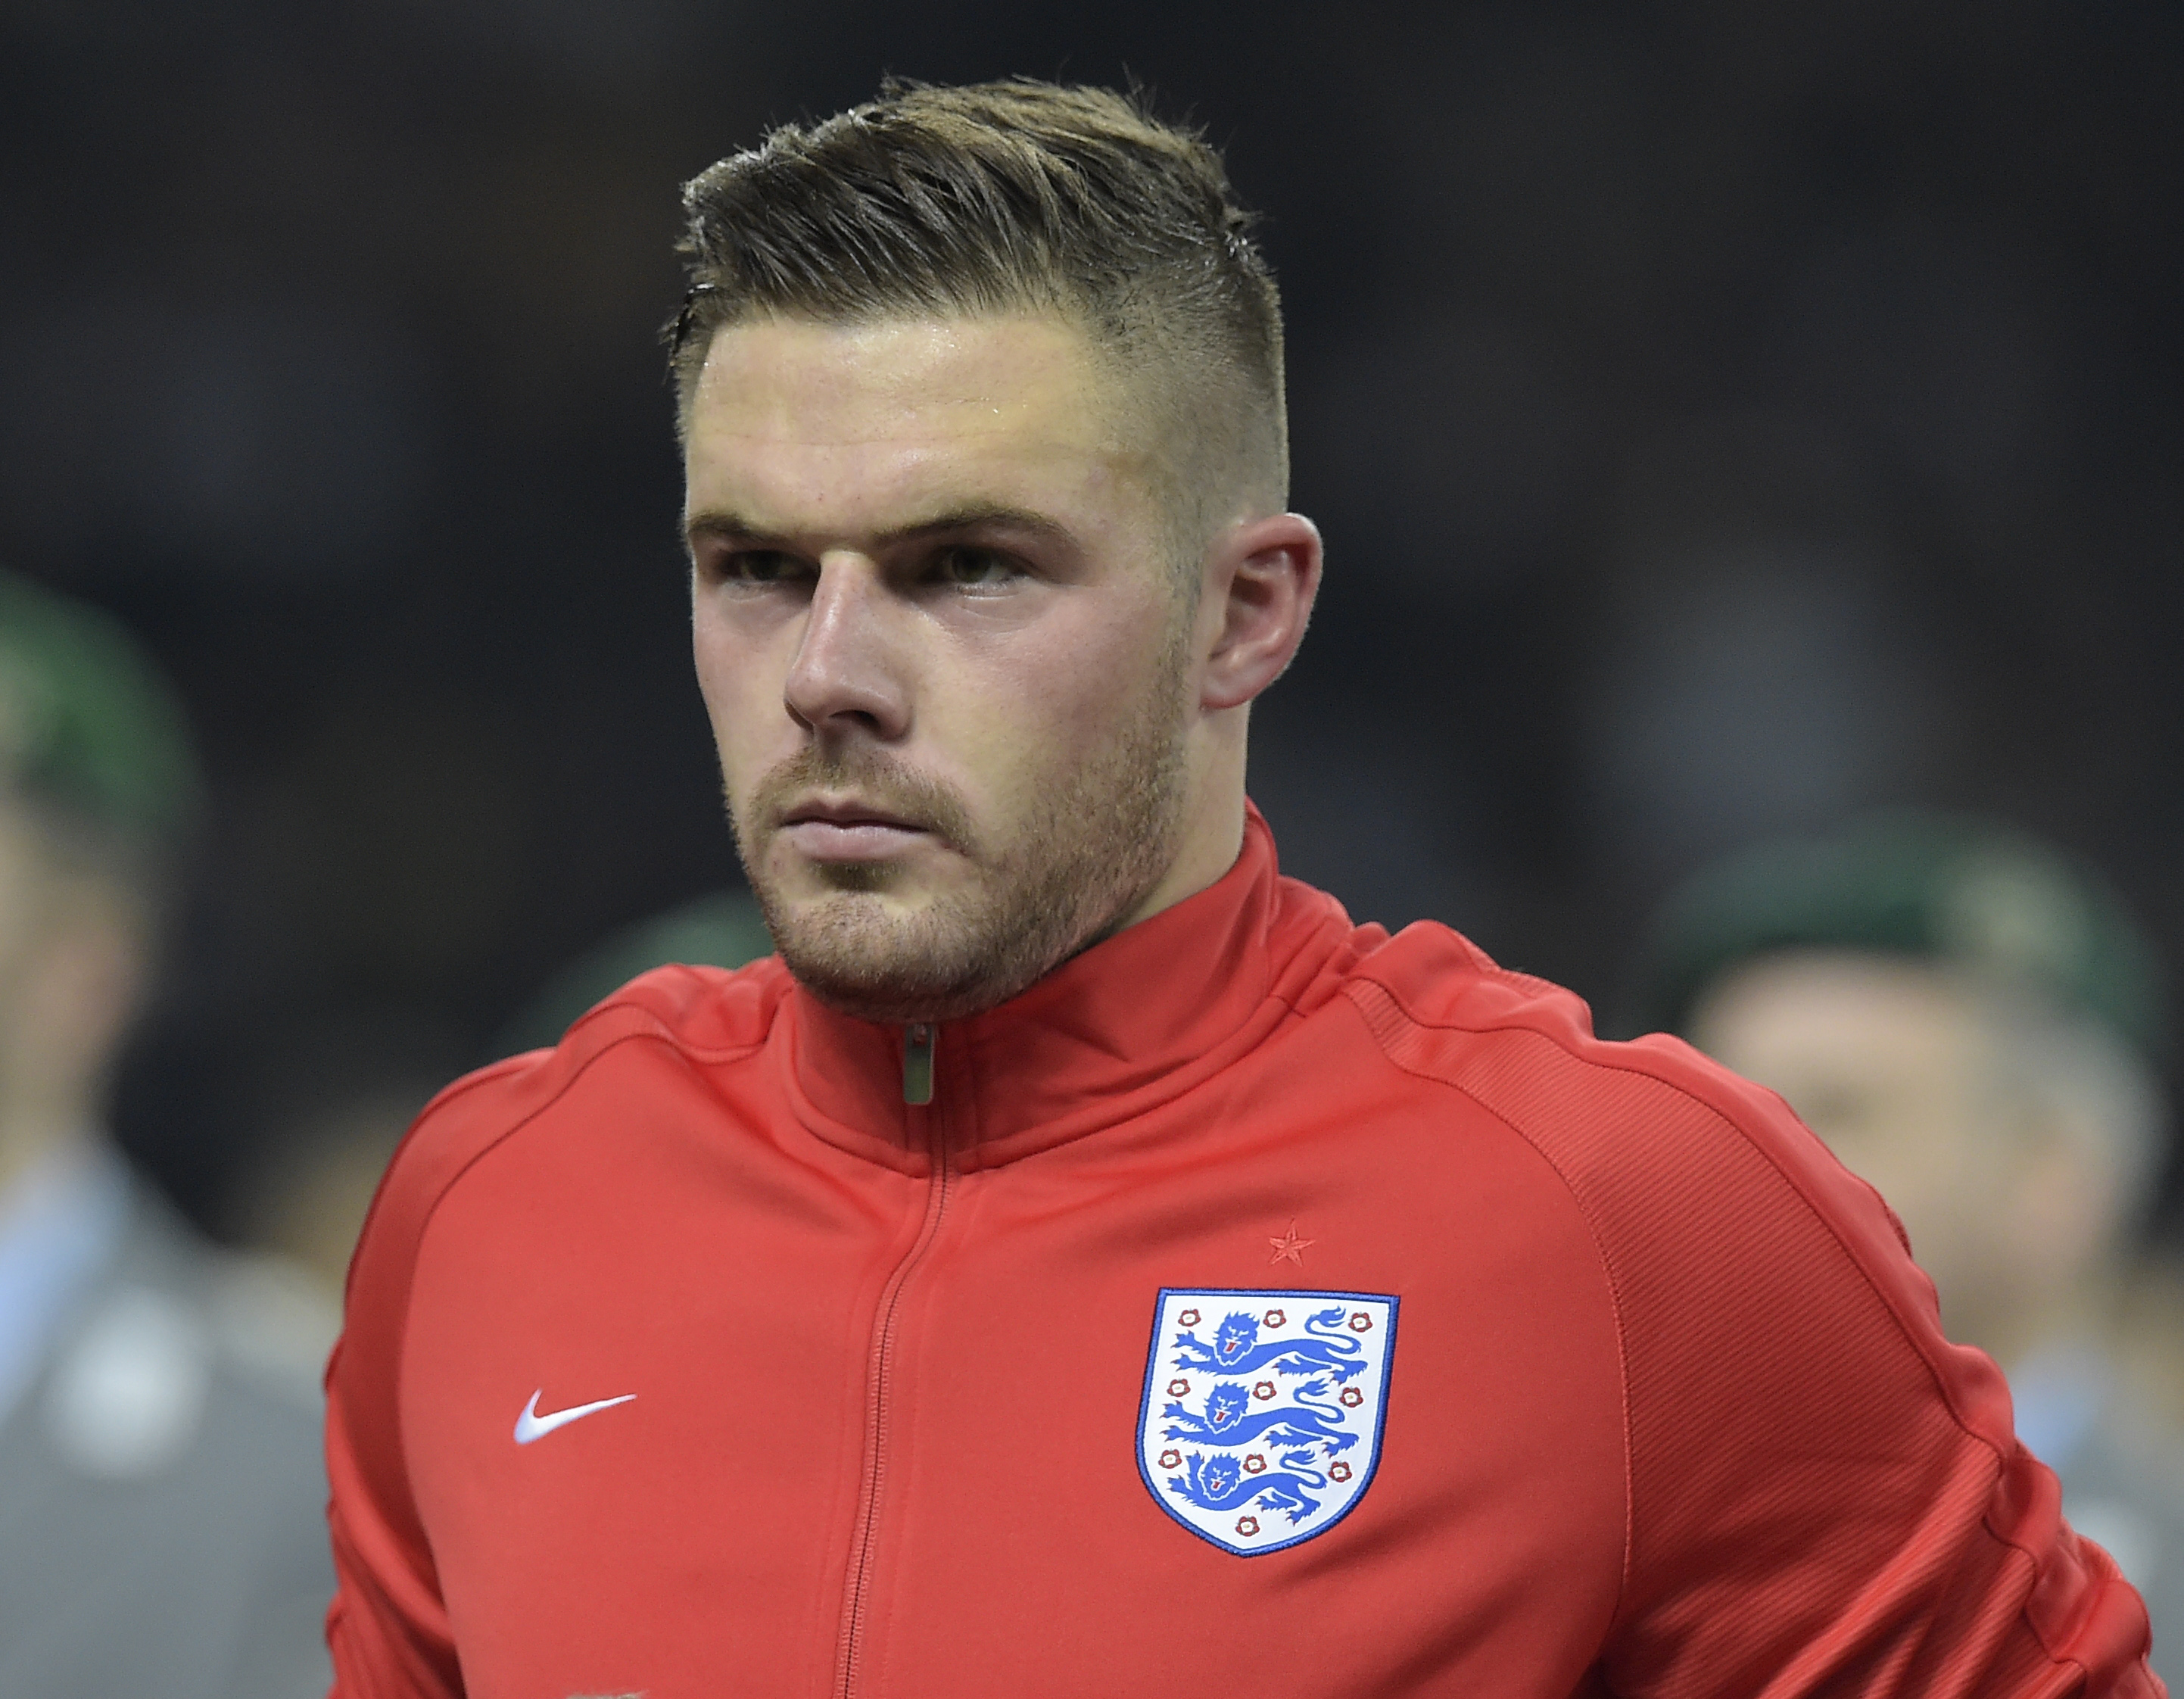 Stoke City goalkeeper Jack Butland confirms that he will miss Euro 2016